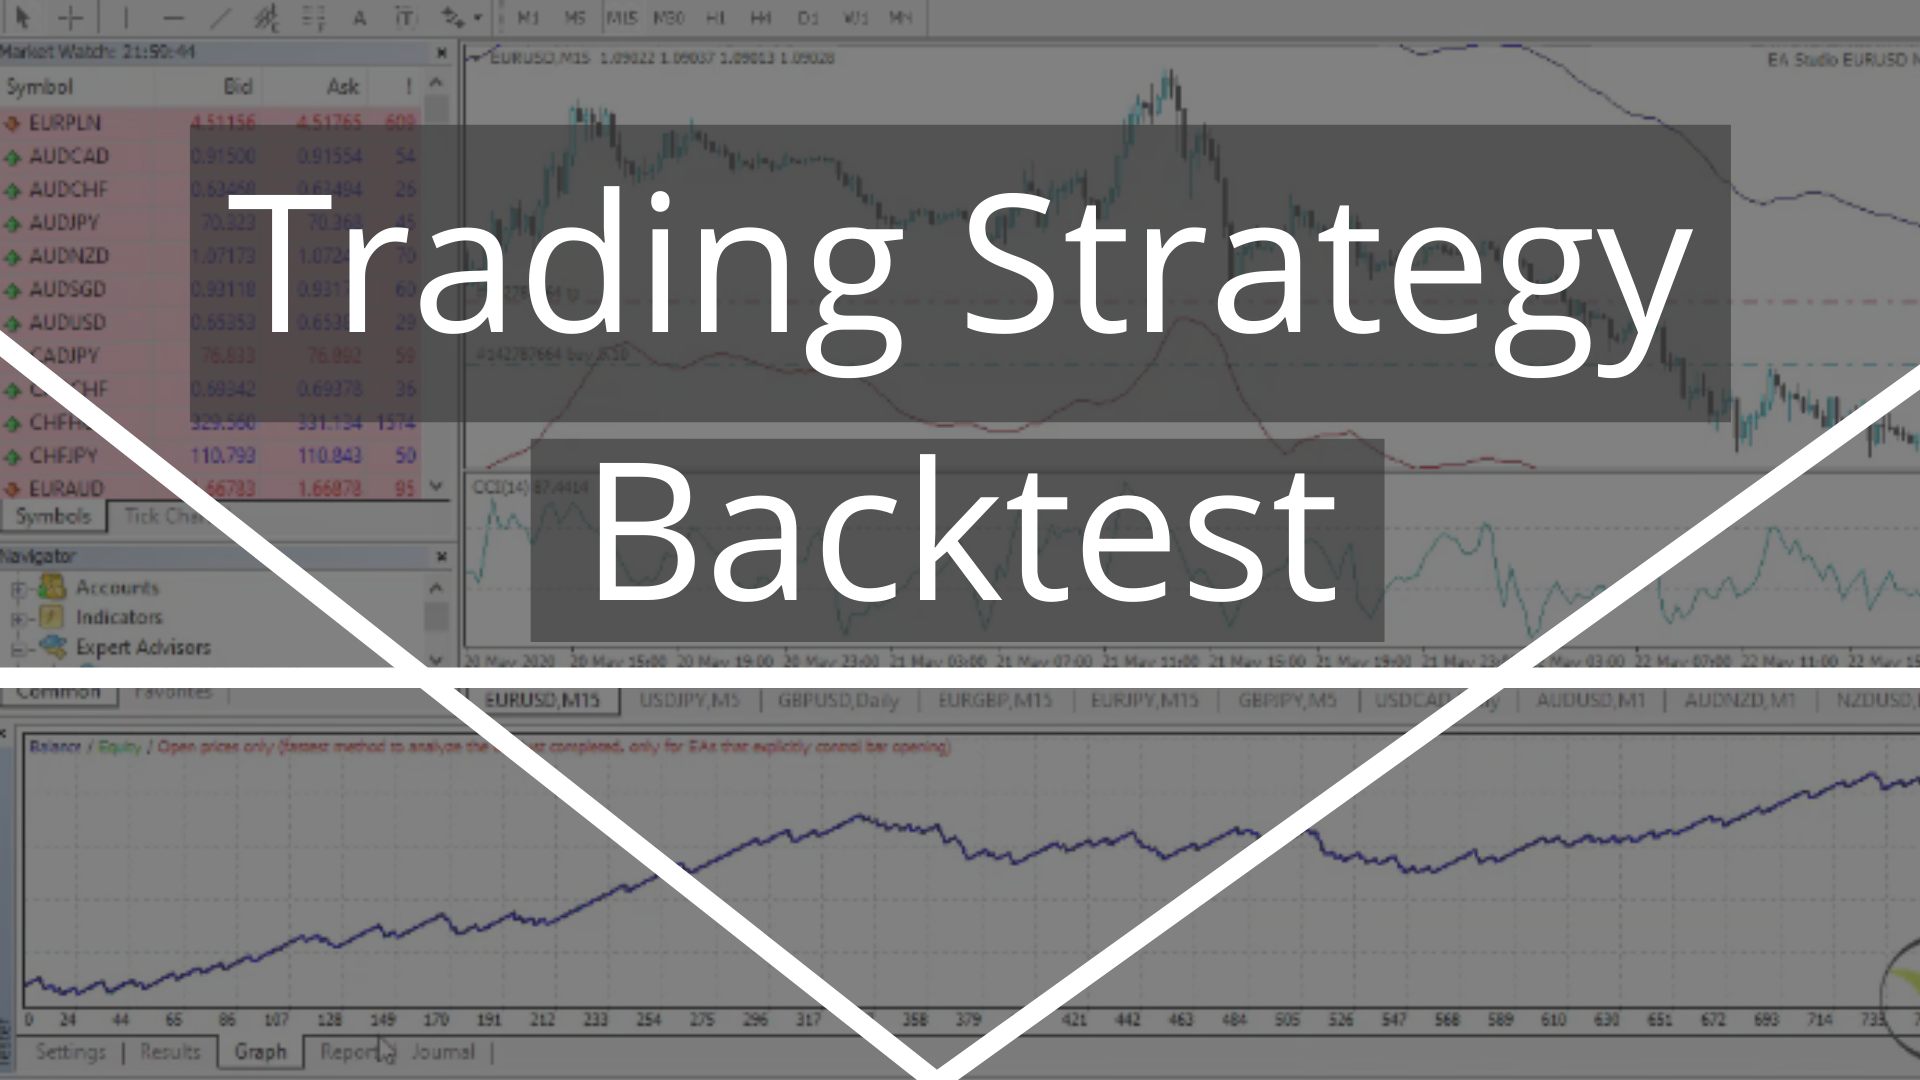 trading stratety backtest on MetaTrader